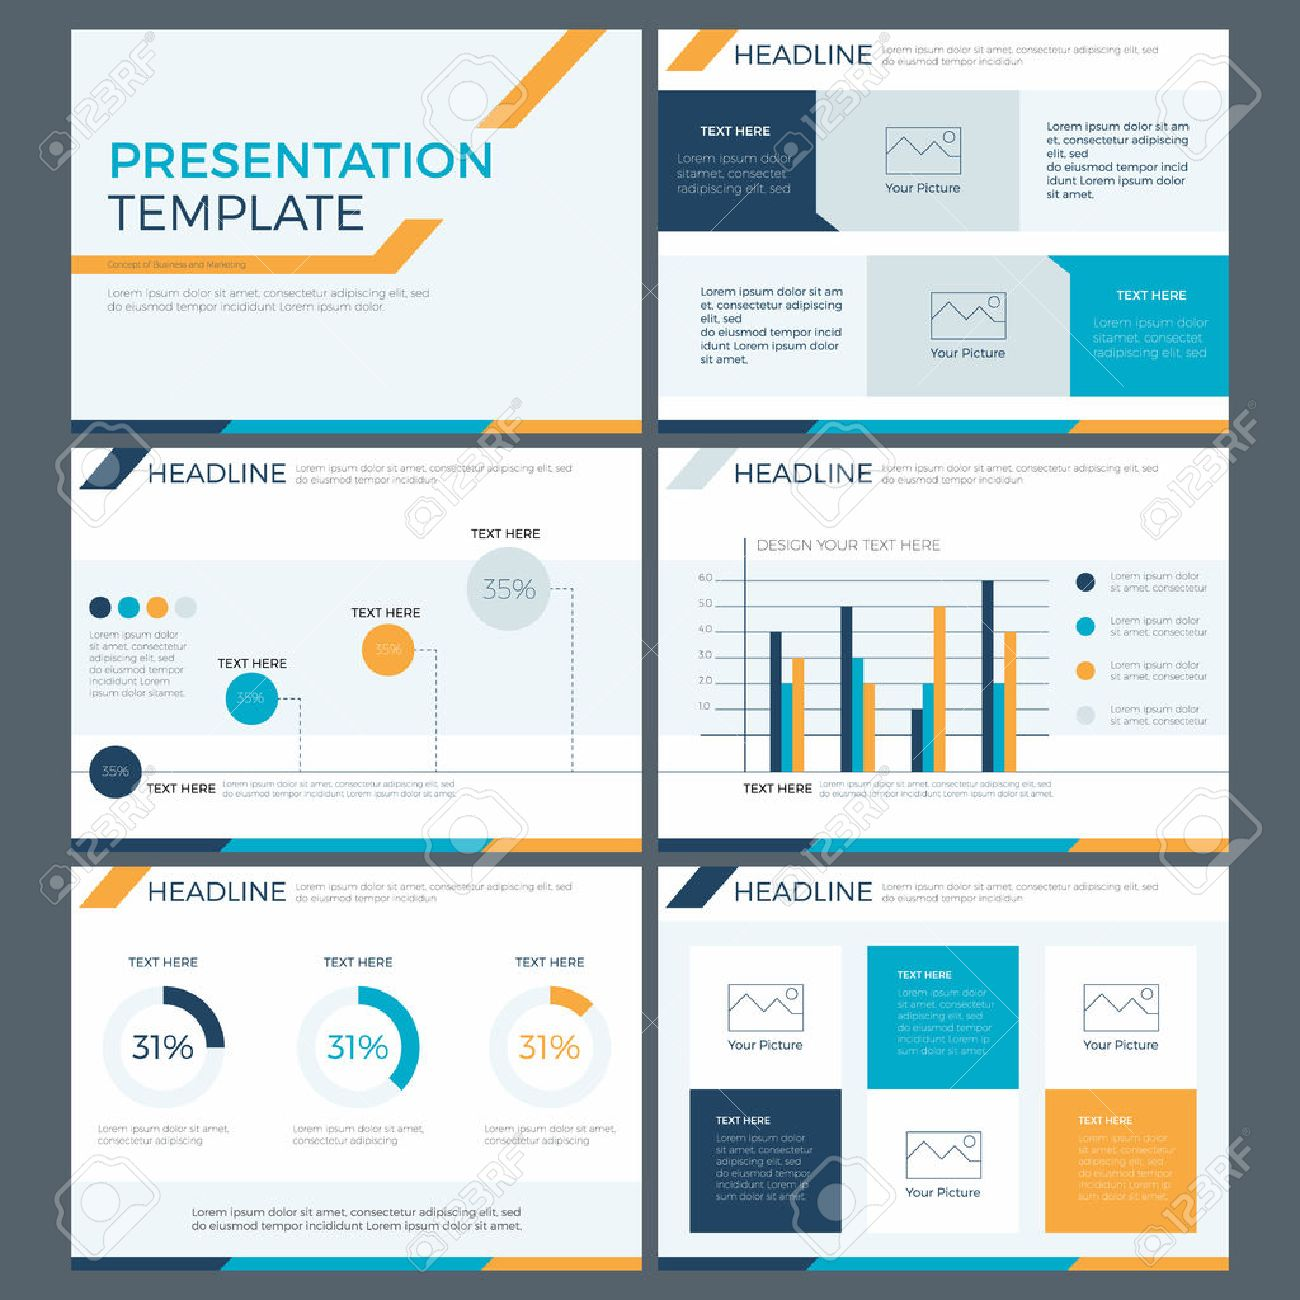 Presentation Template Concept Of Business Team Work And Marketing Power  Point Design Stock Vector - 66562774